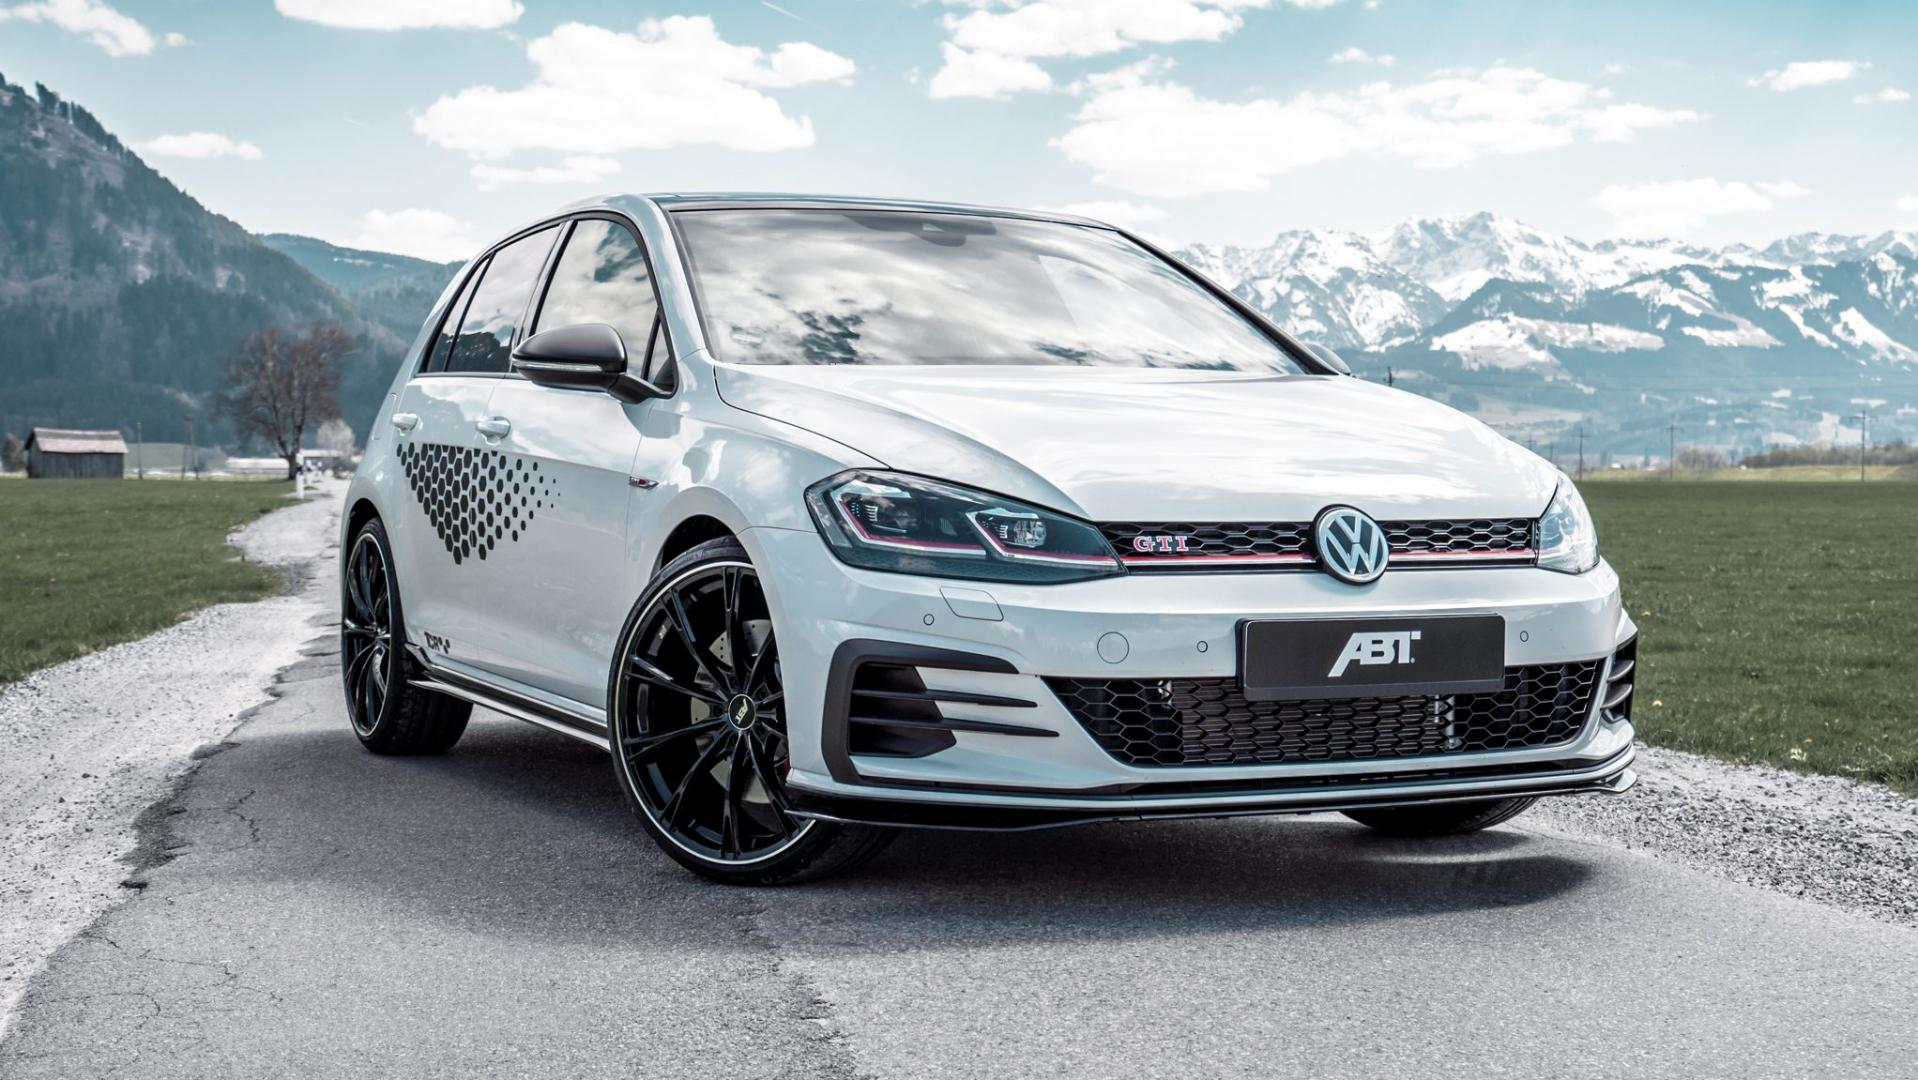 Abt Volkswagen Golf GTI TCR